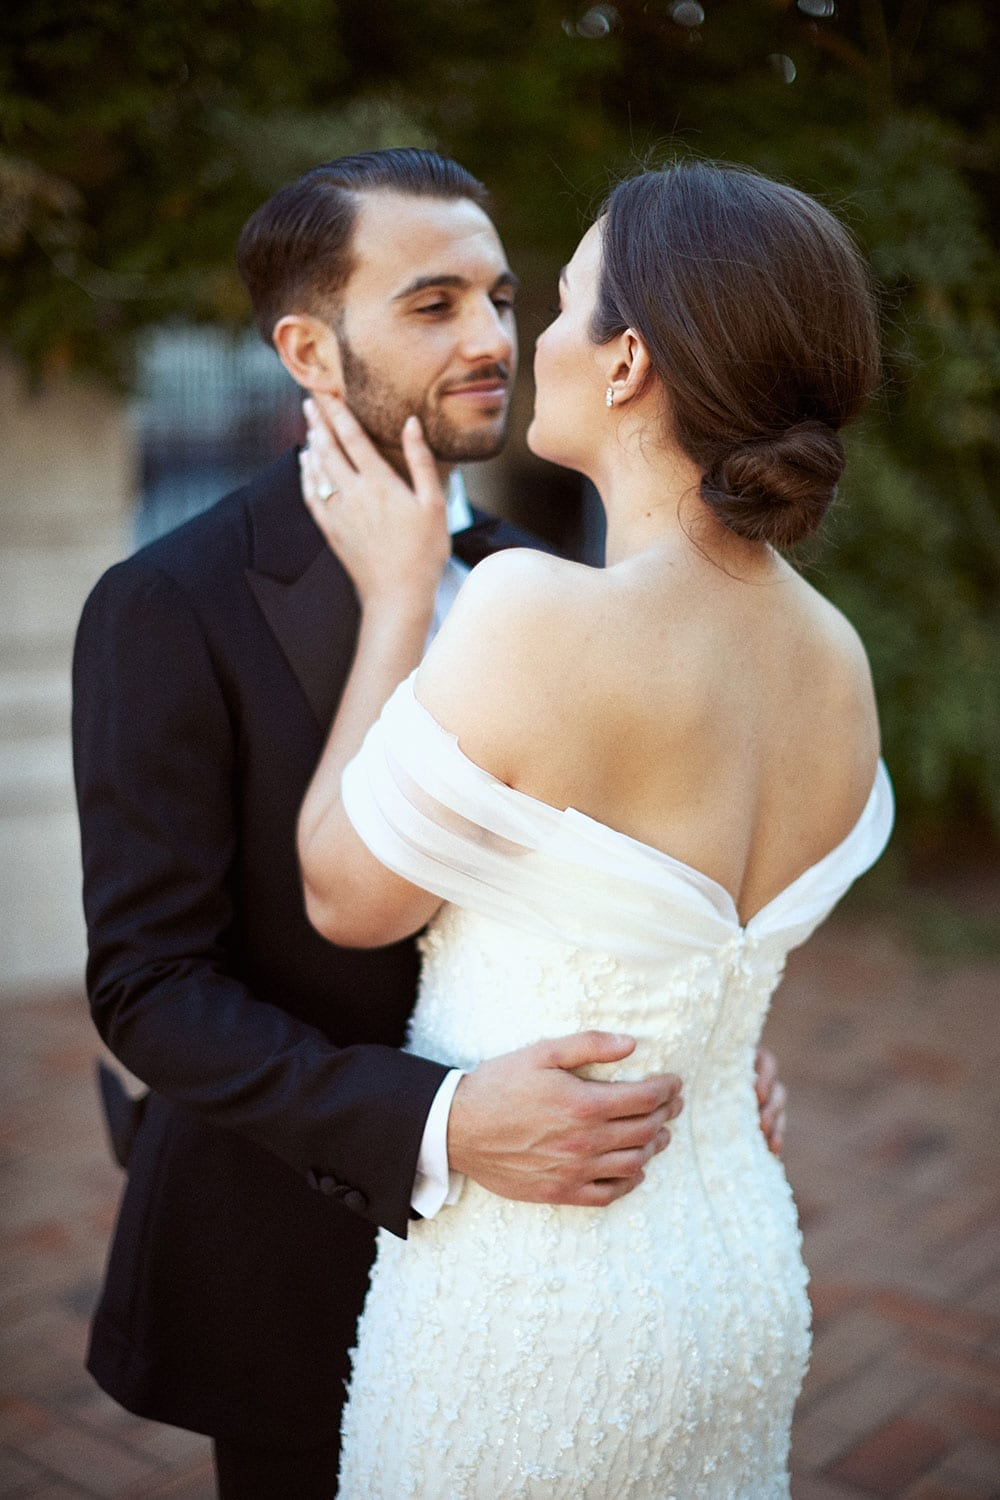 Vinka Design Features Real Weddings - bride in custom made gown with stunning silhouette and lace. Bride and groom embrace